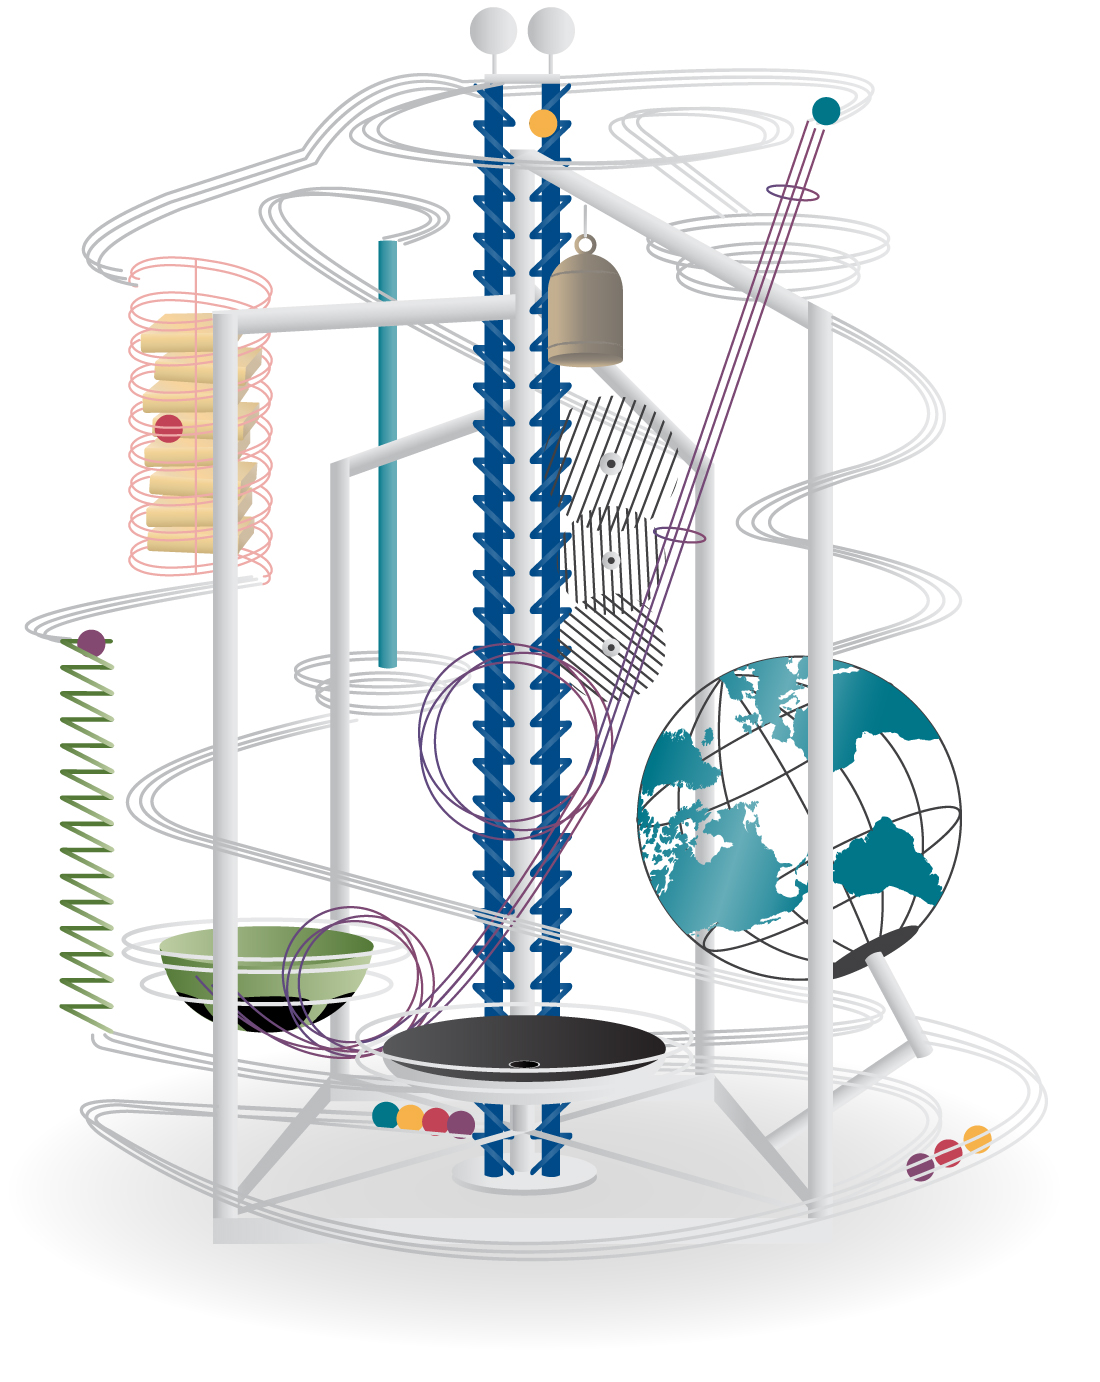 Illustration of the Eureka Audio-Kinetic Sculpture at East Tennessee Children's Hospital